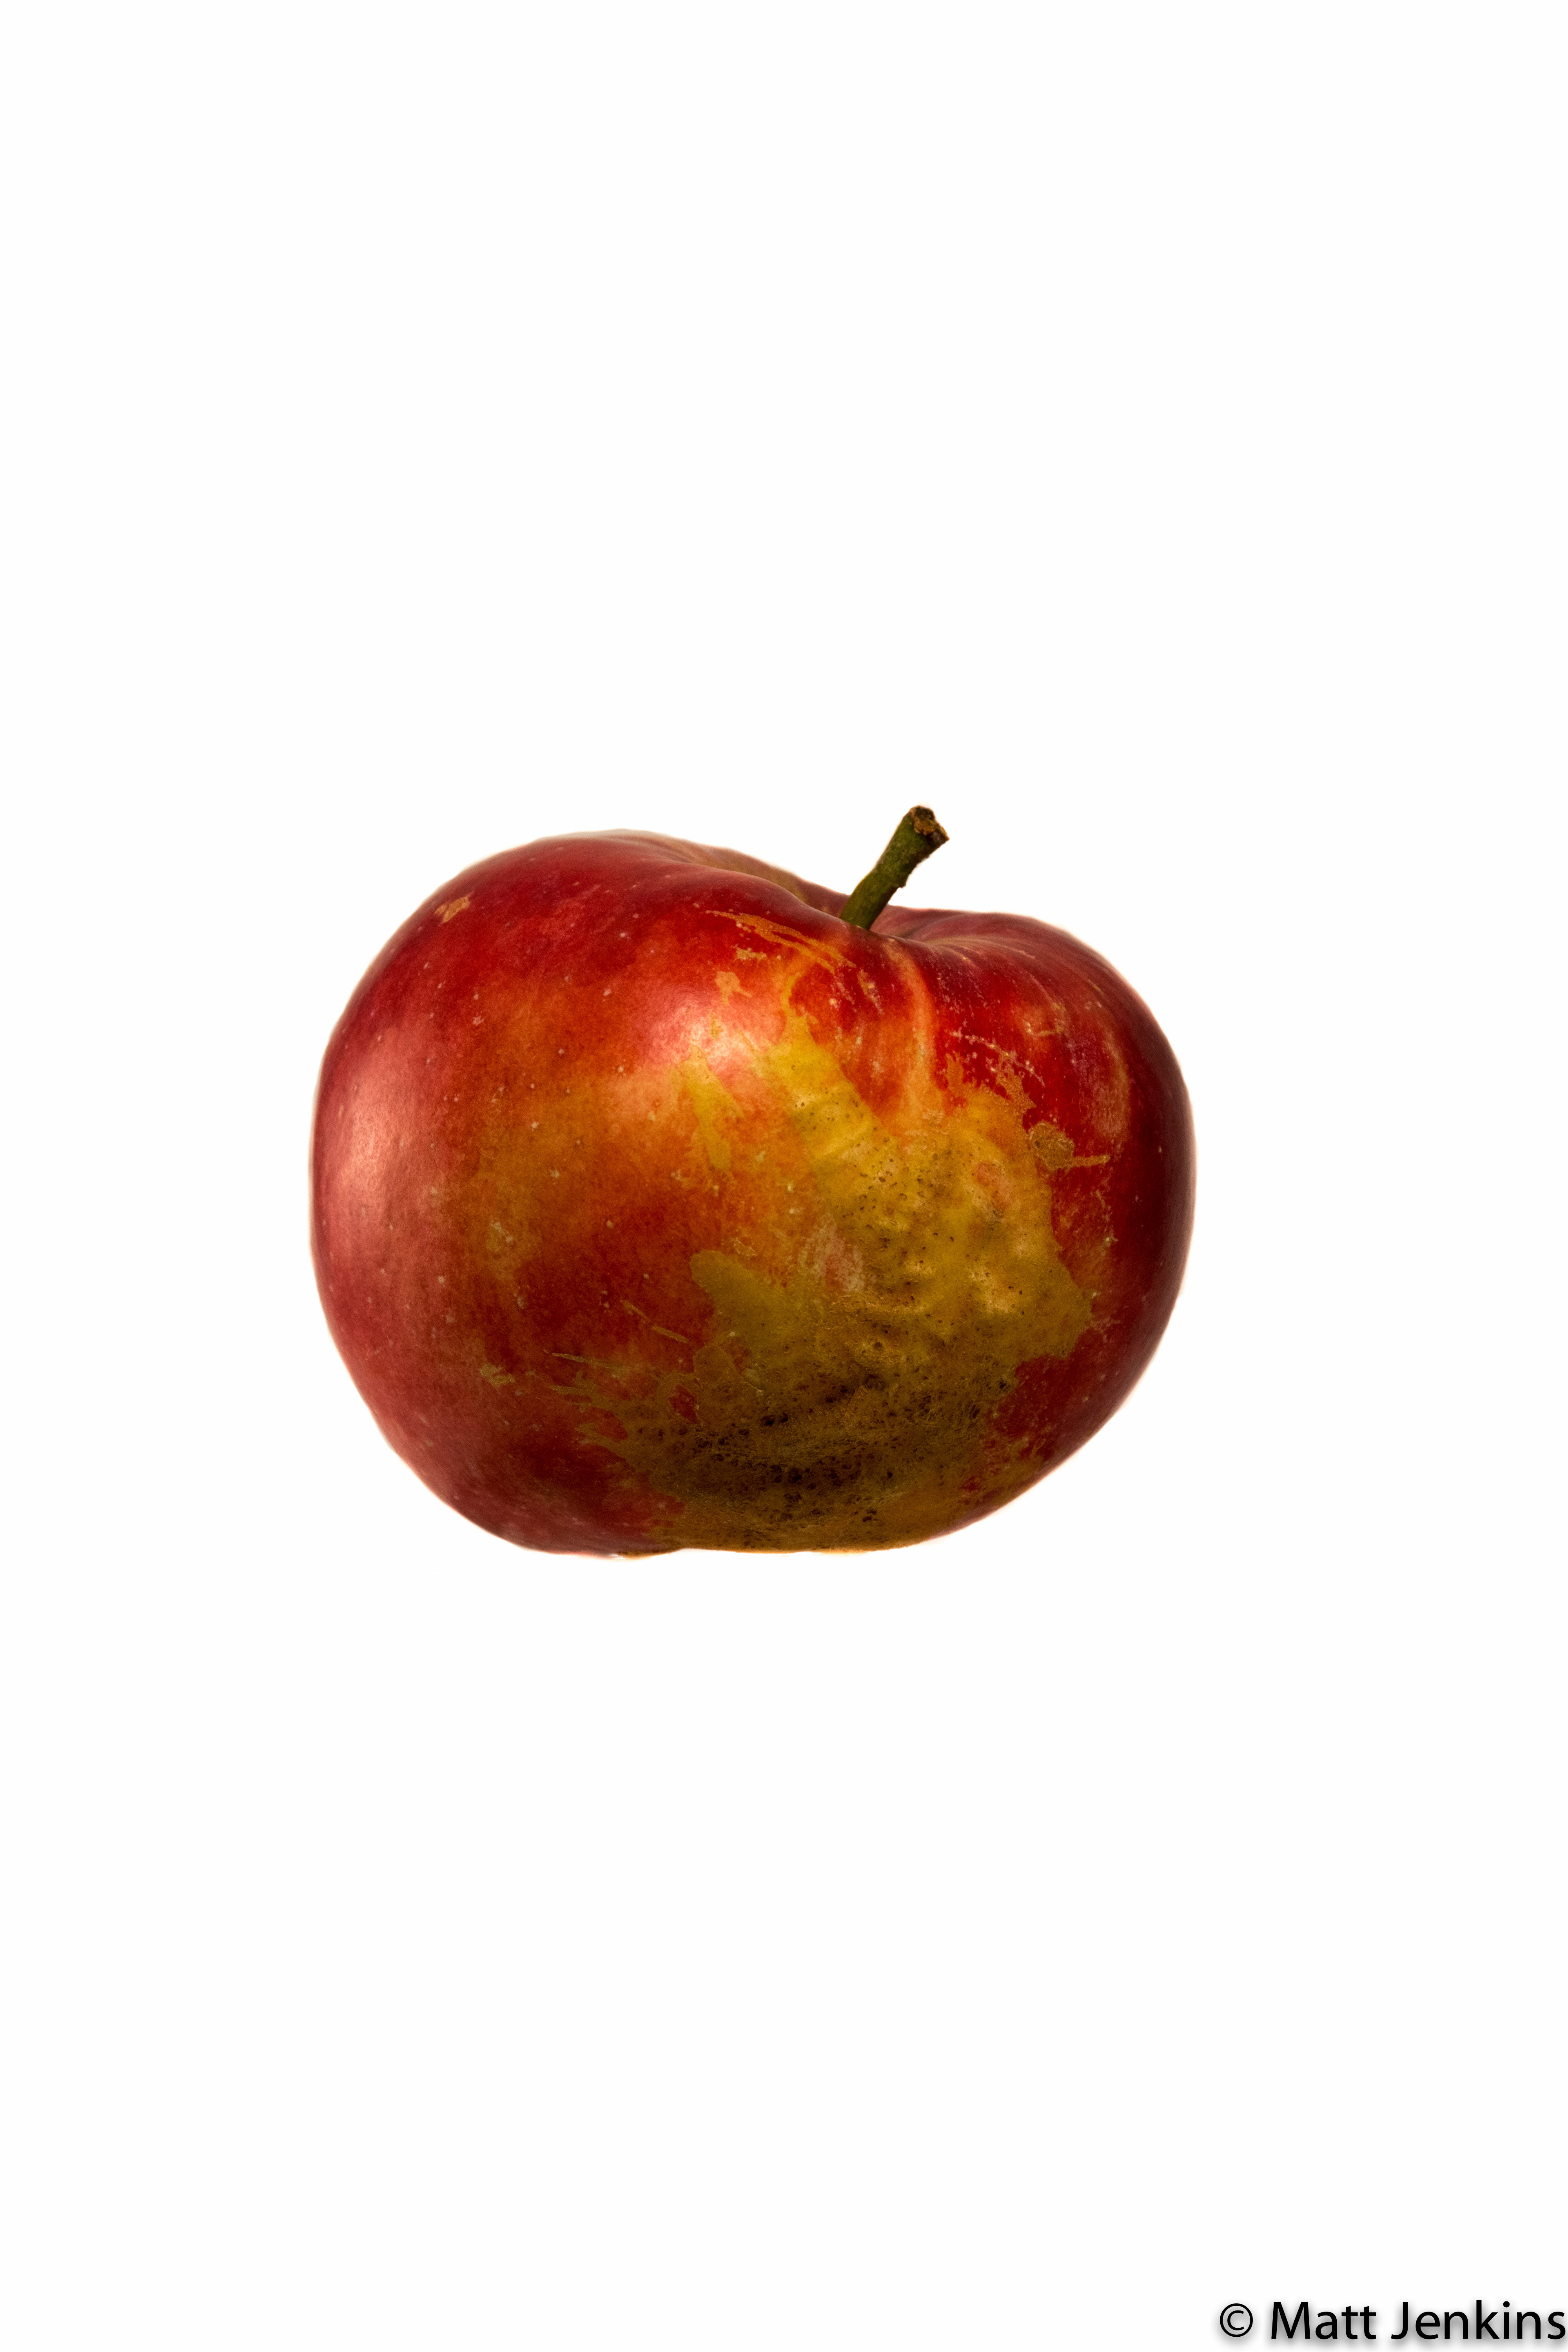 A aesthetically flawed apple on white background